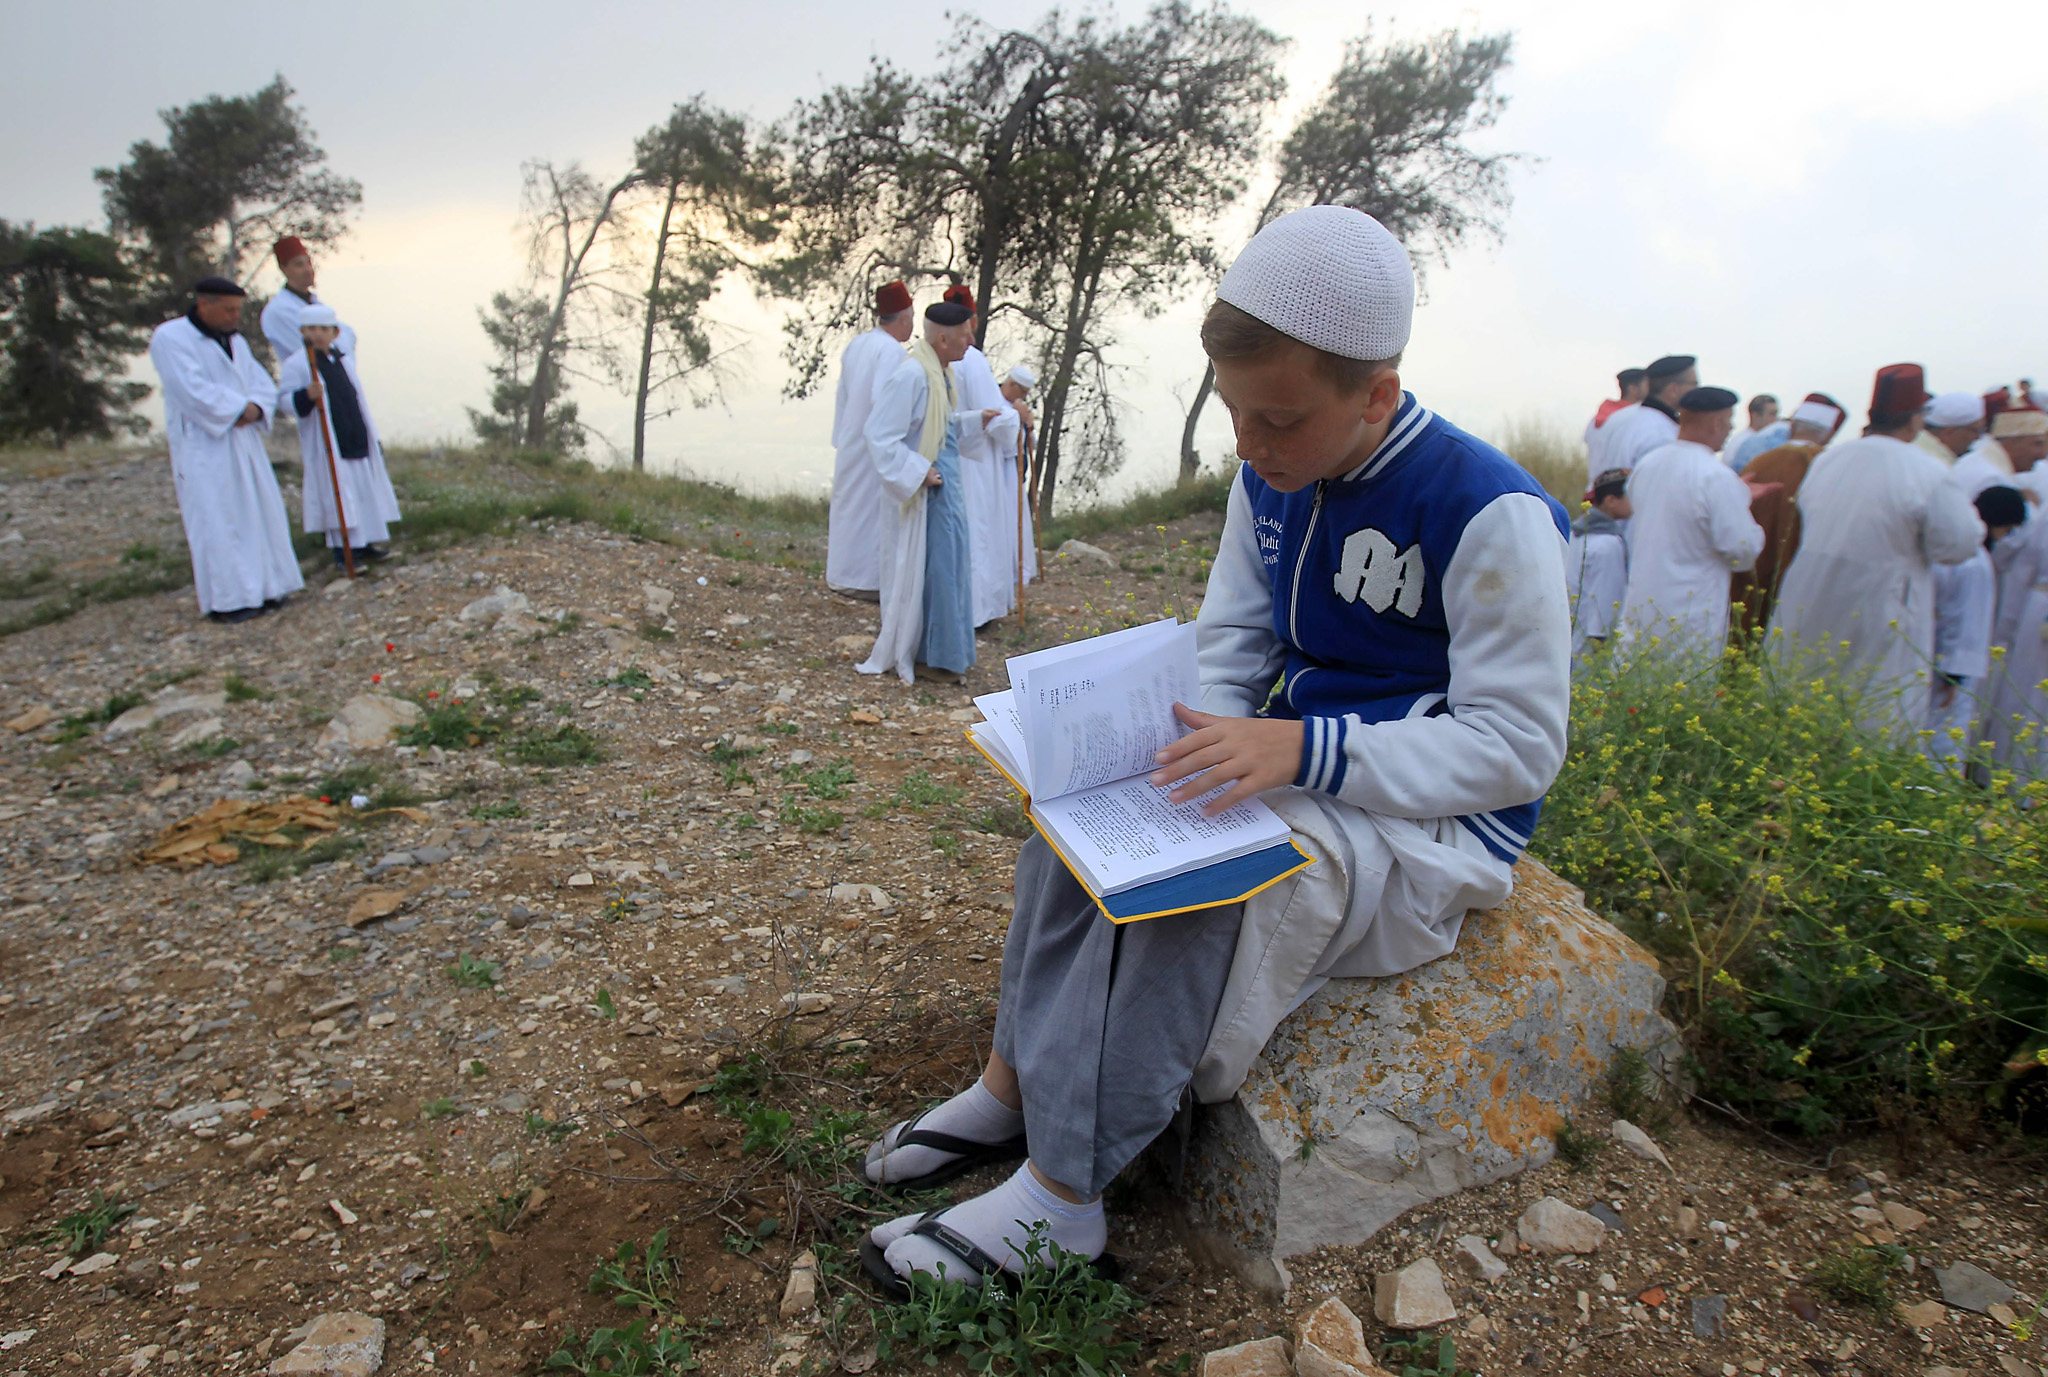 Members of the ancient Samaritan community attend the Passover pilgrimage to the religion's holiest site on the top Mount Gerizim near the West Bank town of Nablus, early Wednesday, April 27, 2016. Samaritans descended from the ancient Israelite tribes of Menashe and Efraim but broke away from mainstream Judaism 2,800 years ago. Today, the remaining 700 Samaritans live in the Palestinian city of Nablus in the West Bank and the Israeli seaside town of Holon, south of Tel Aviv. (AP Photo/Majdi Mohammed)